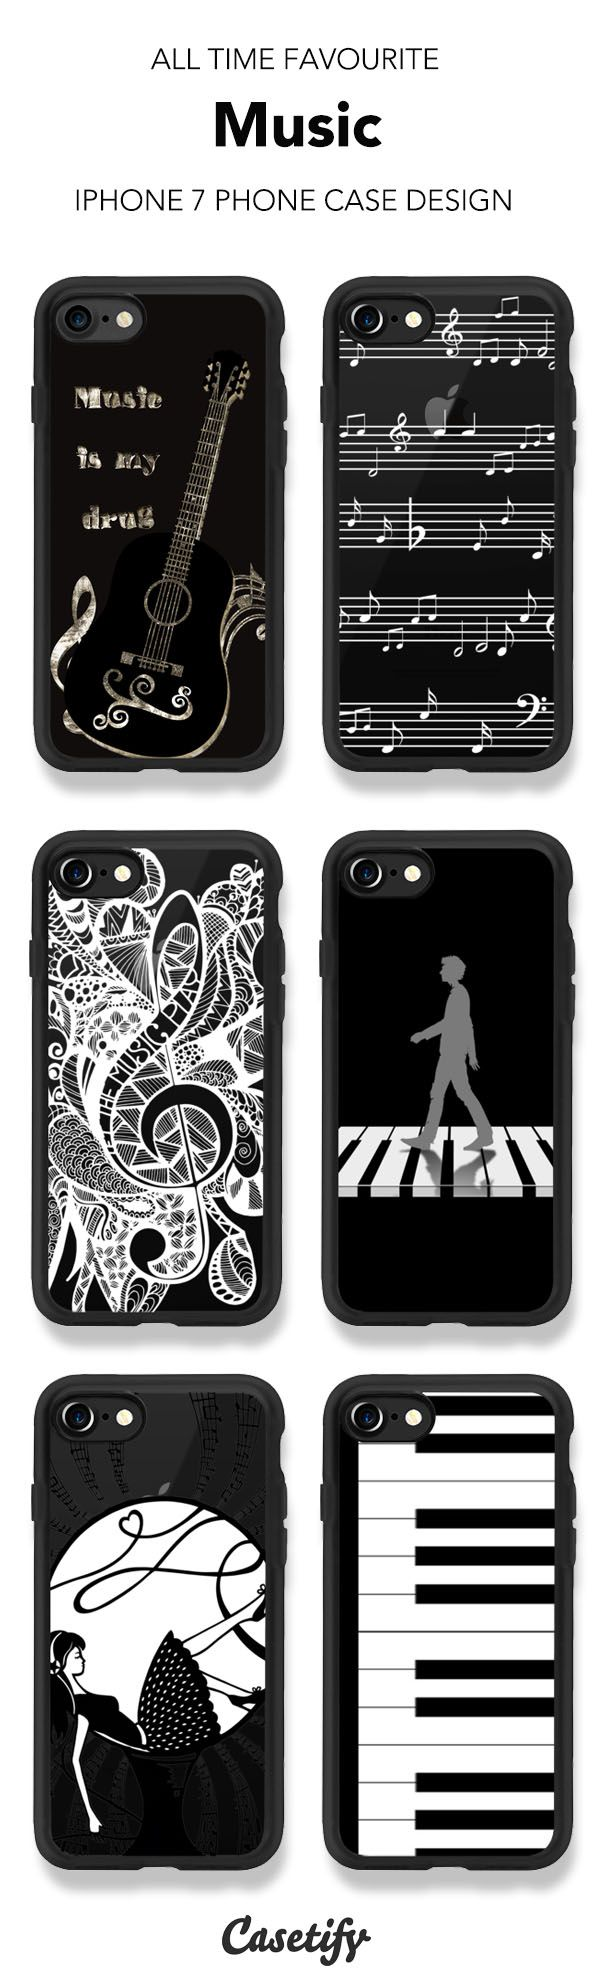 All Time Favourite Music iPhone 7 and iPhone 7 Plus case. Shop these phone cases here >   https://www.casetify.com/artworks/7iGLAG0IDc